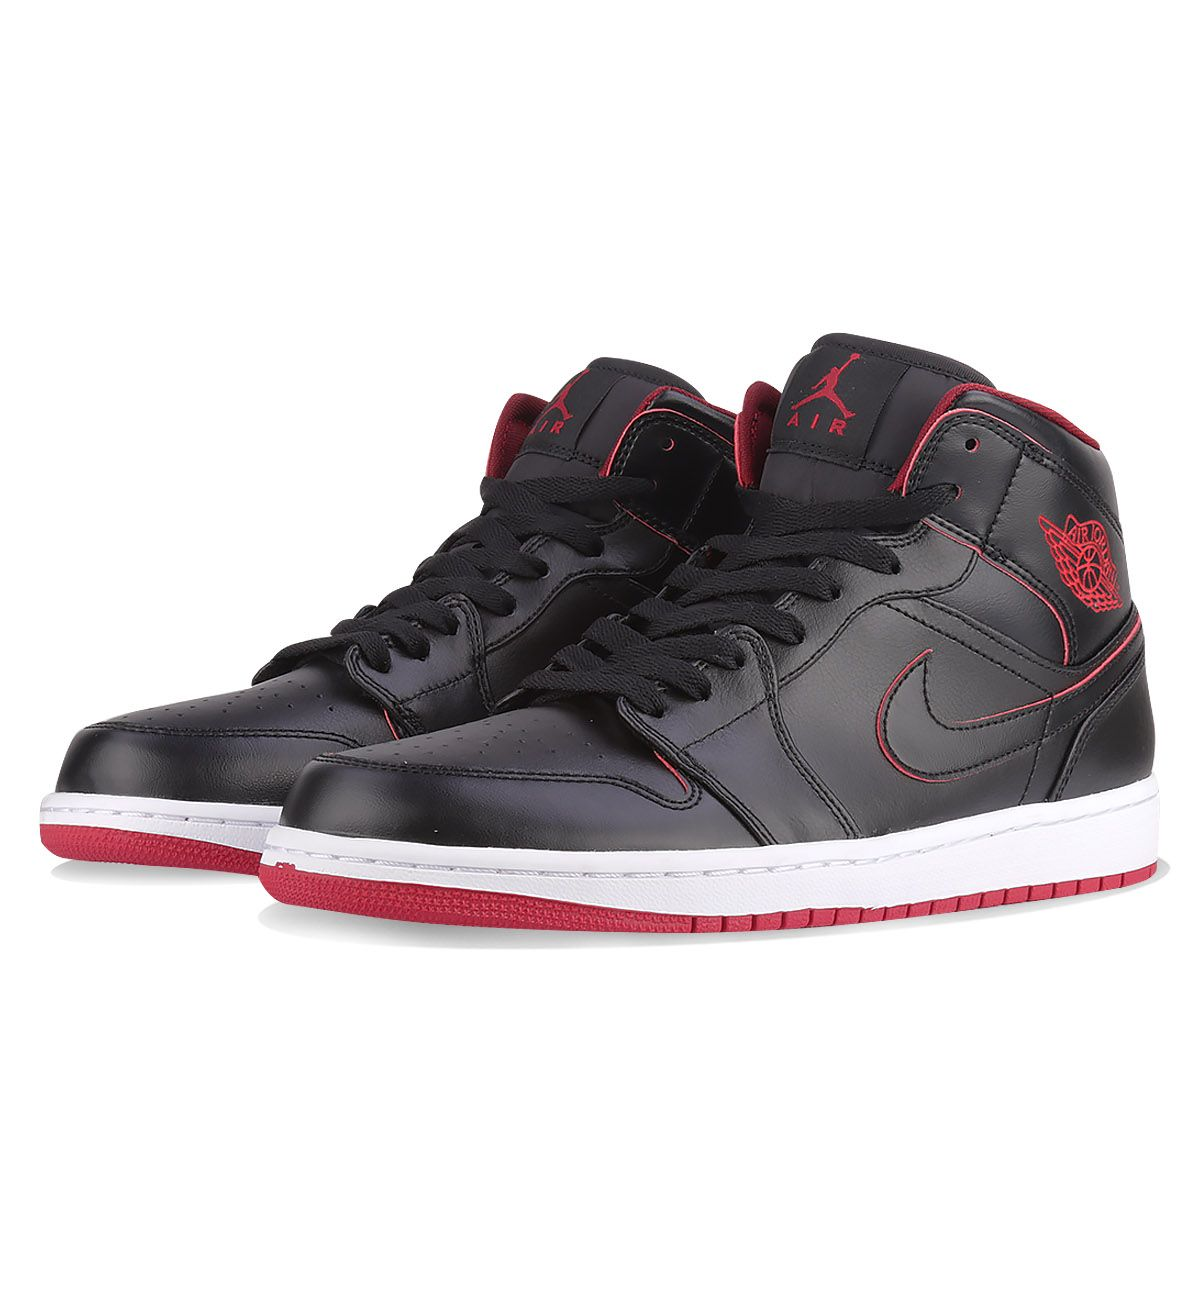 8b9e7a67bda0b4 Nike Air Jordan 1 Mid Black   White   Gym Red - Nike Air Jordan The Nike  Air Jordan 1 Mid Black has a combination full-grain leather and smooth  Nubuck upper ...